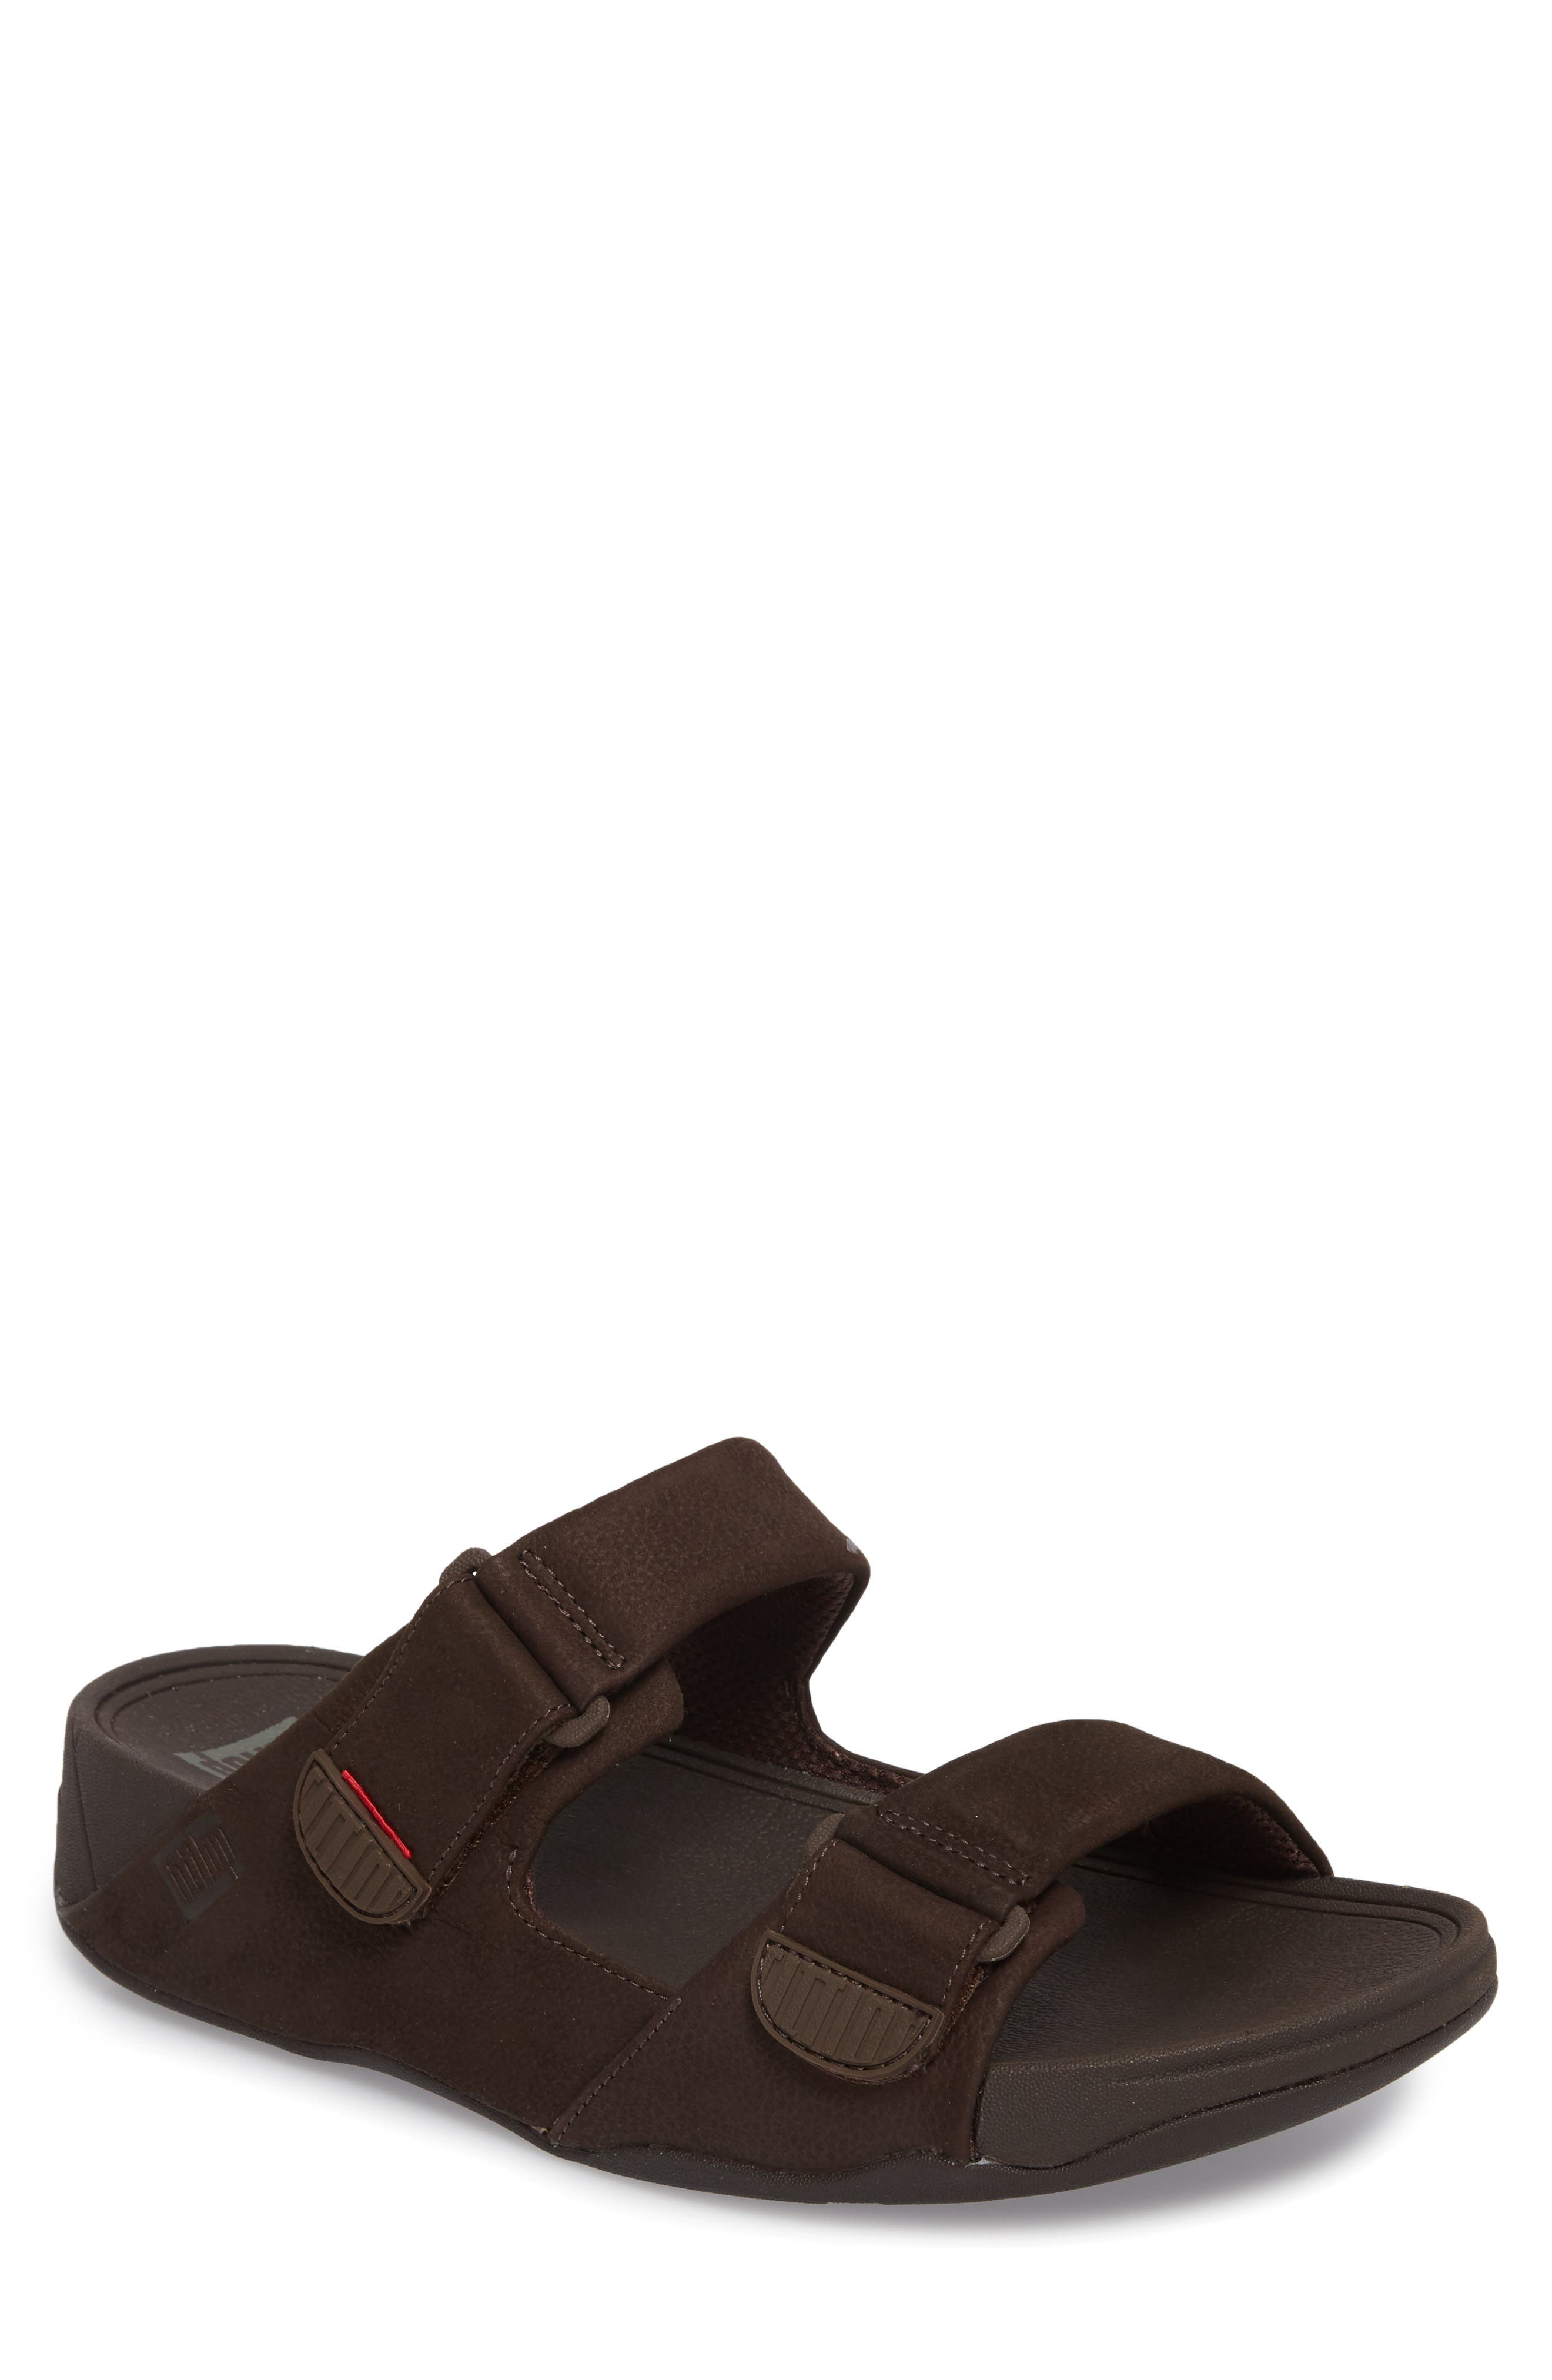 Gogh Sport Slide Sandal,                         Main,                         color, Chocolate Brown